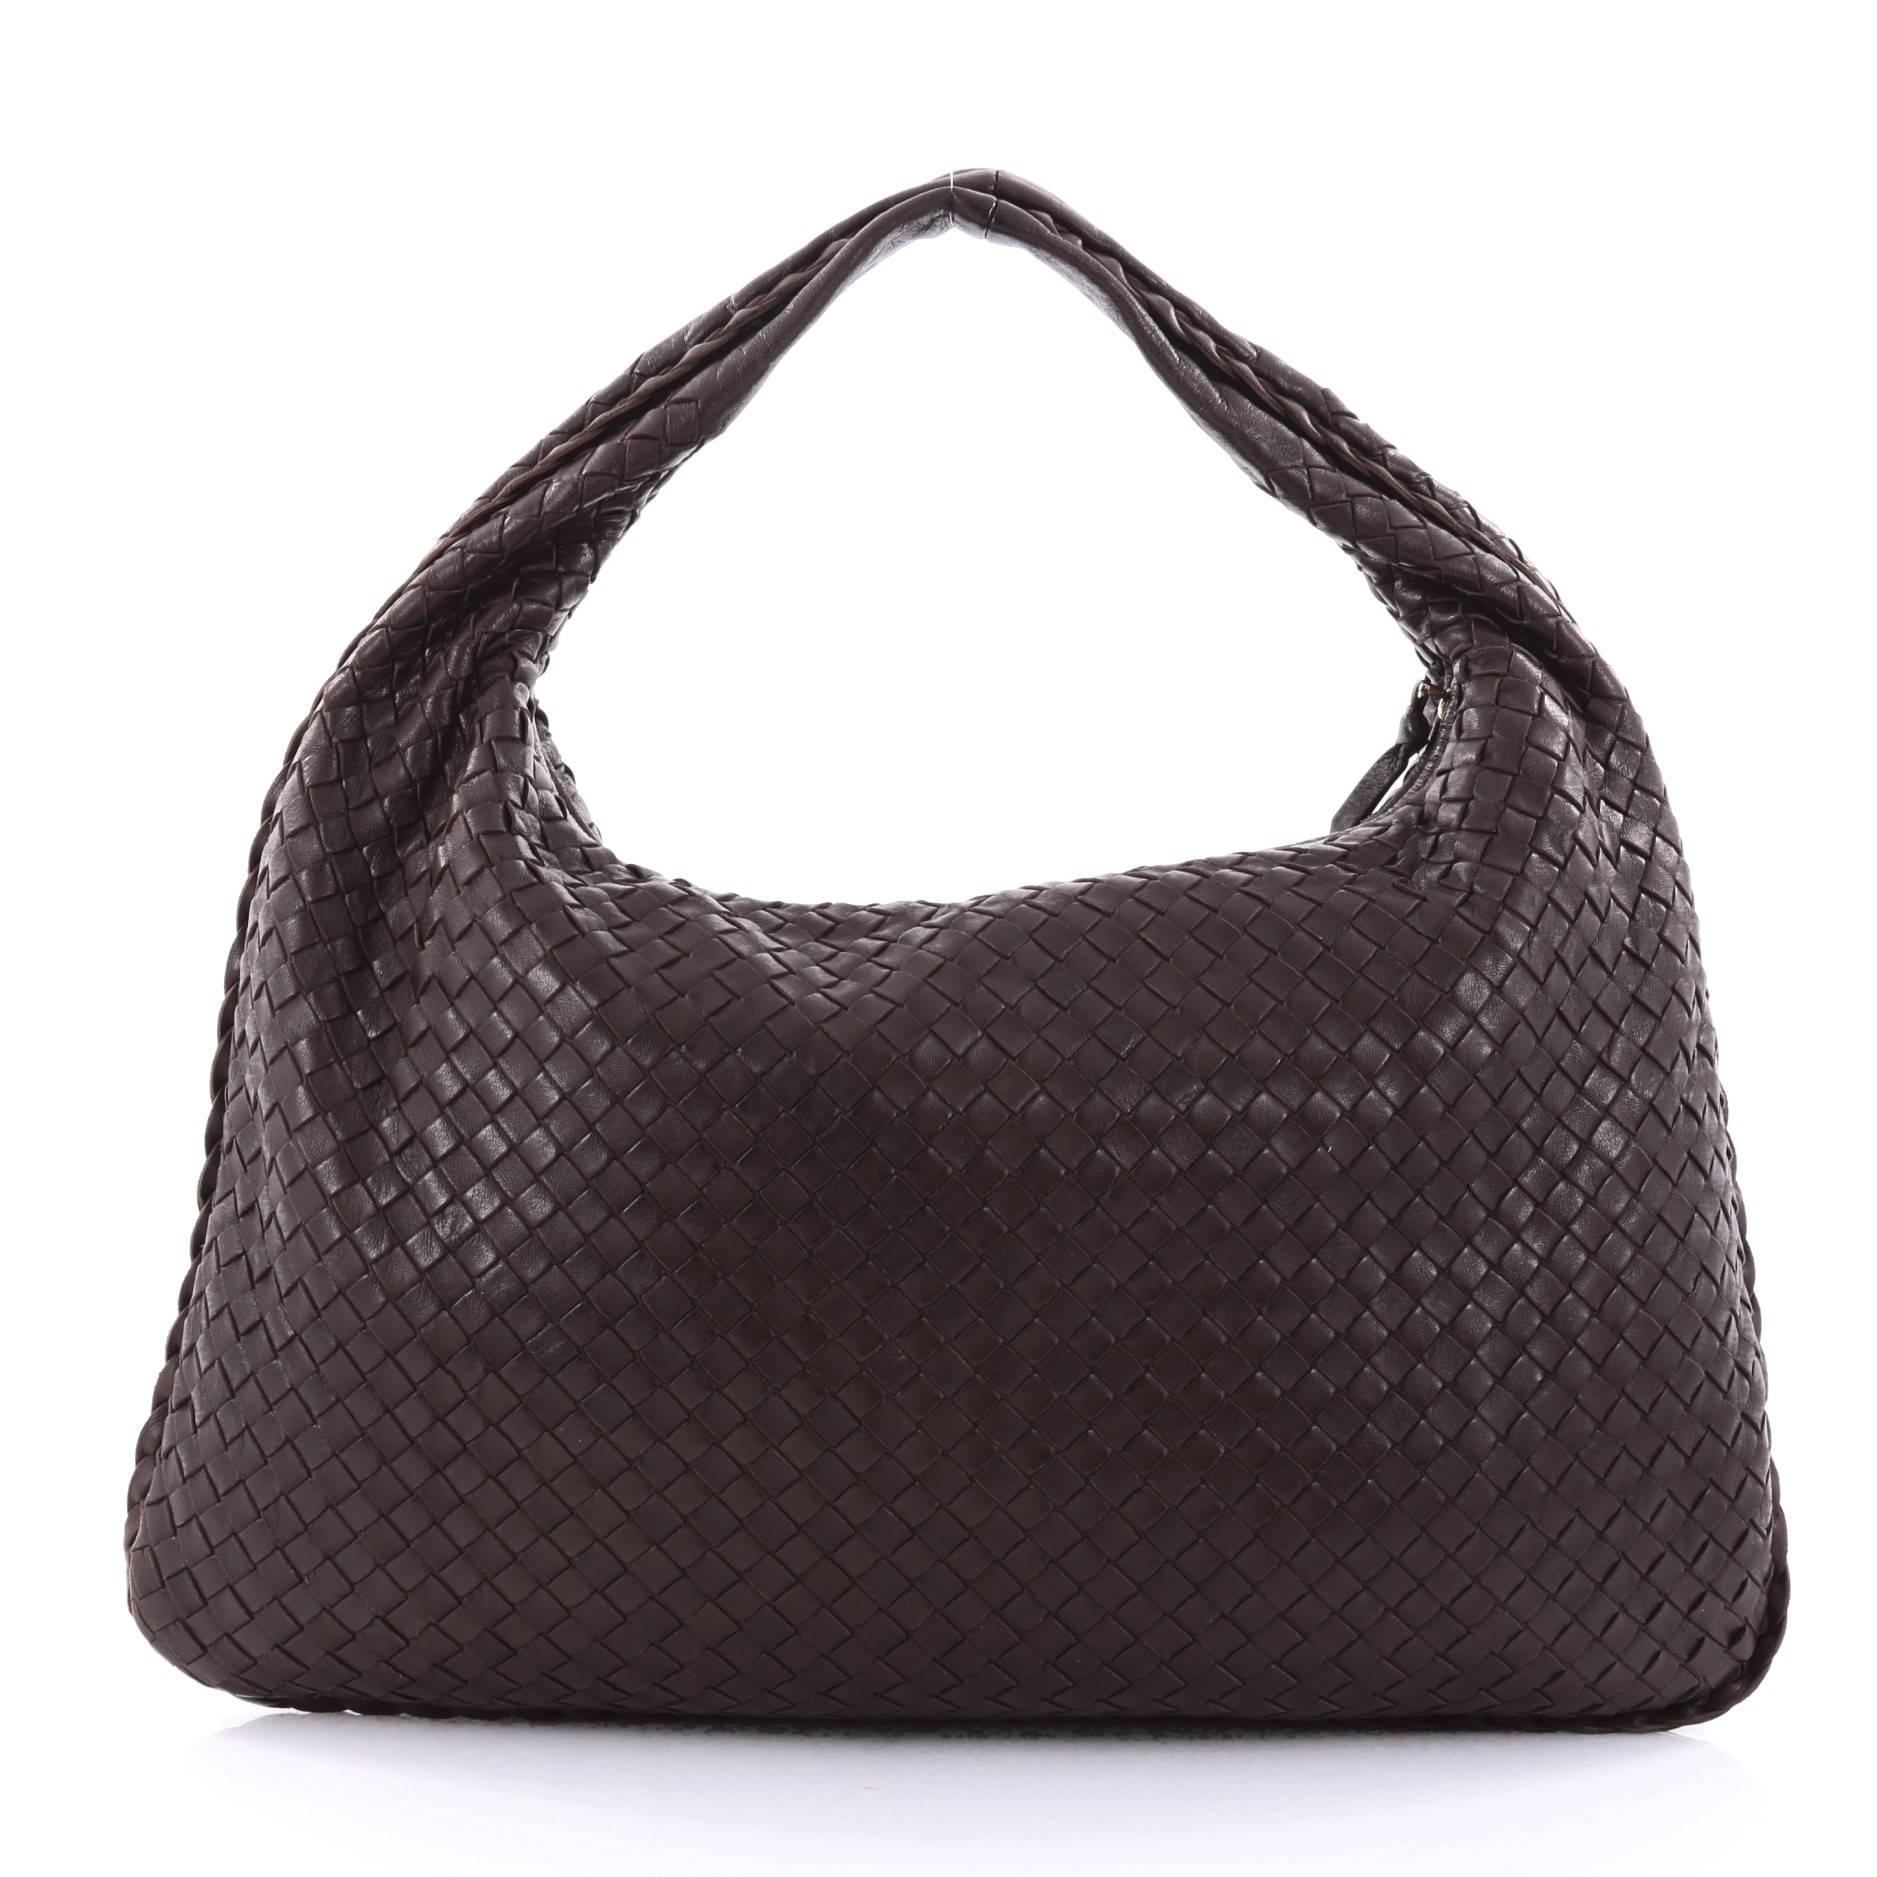 Bottega Veneta Veneta Hobo Intrecciato Nappa Large at 1stdibs 5f21a575abcae